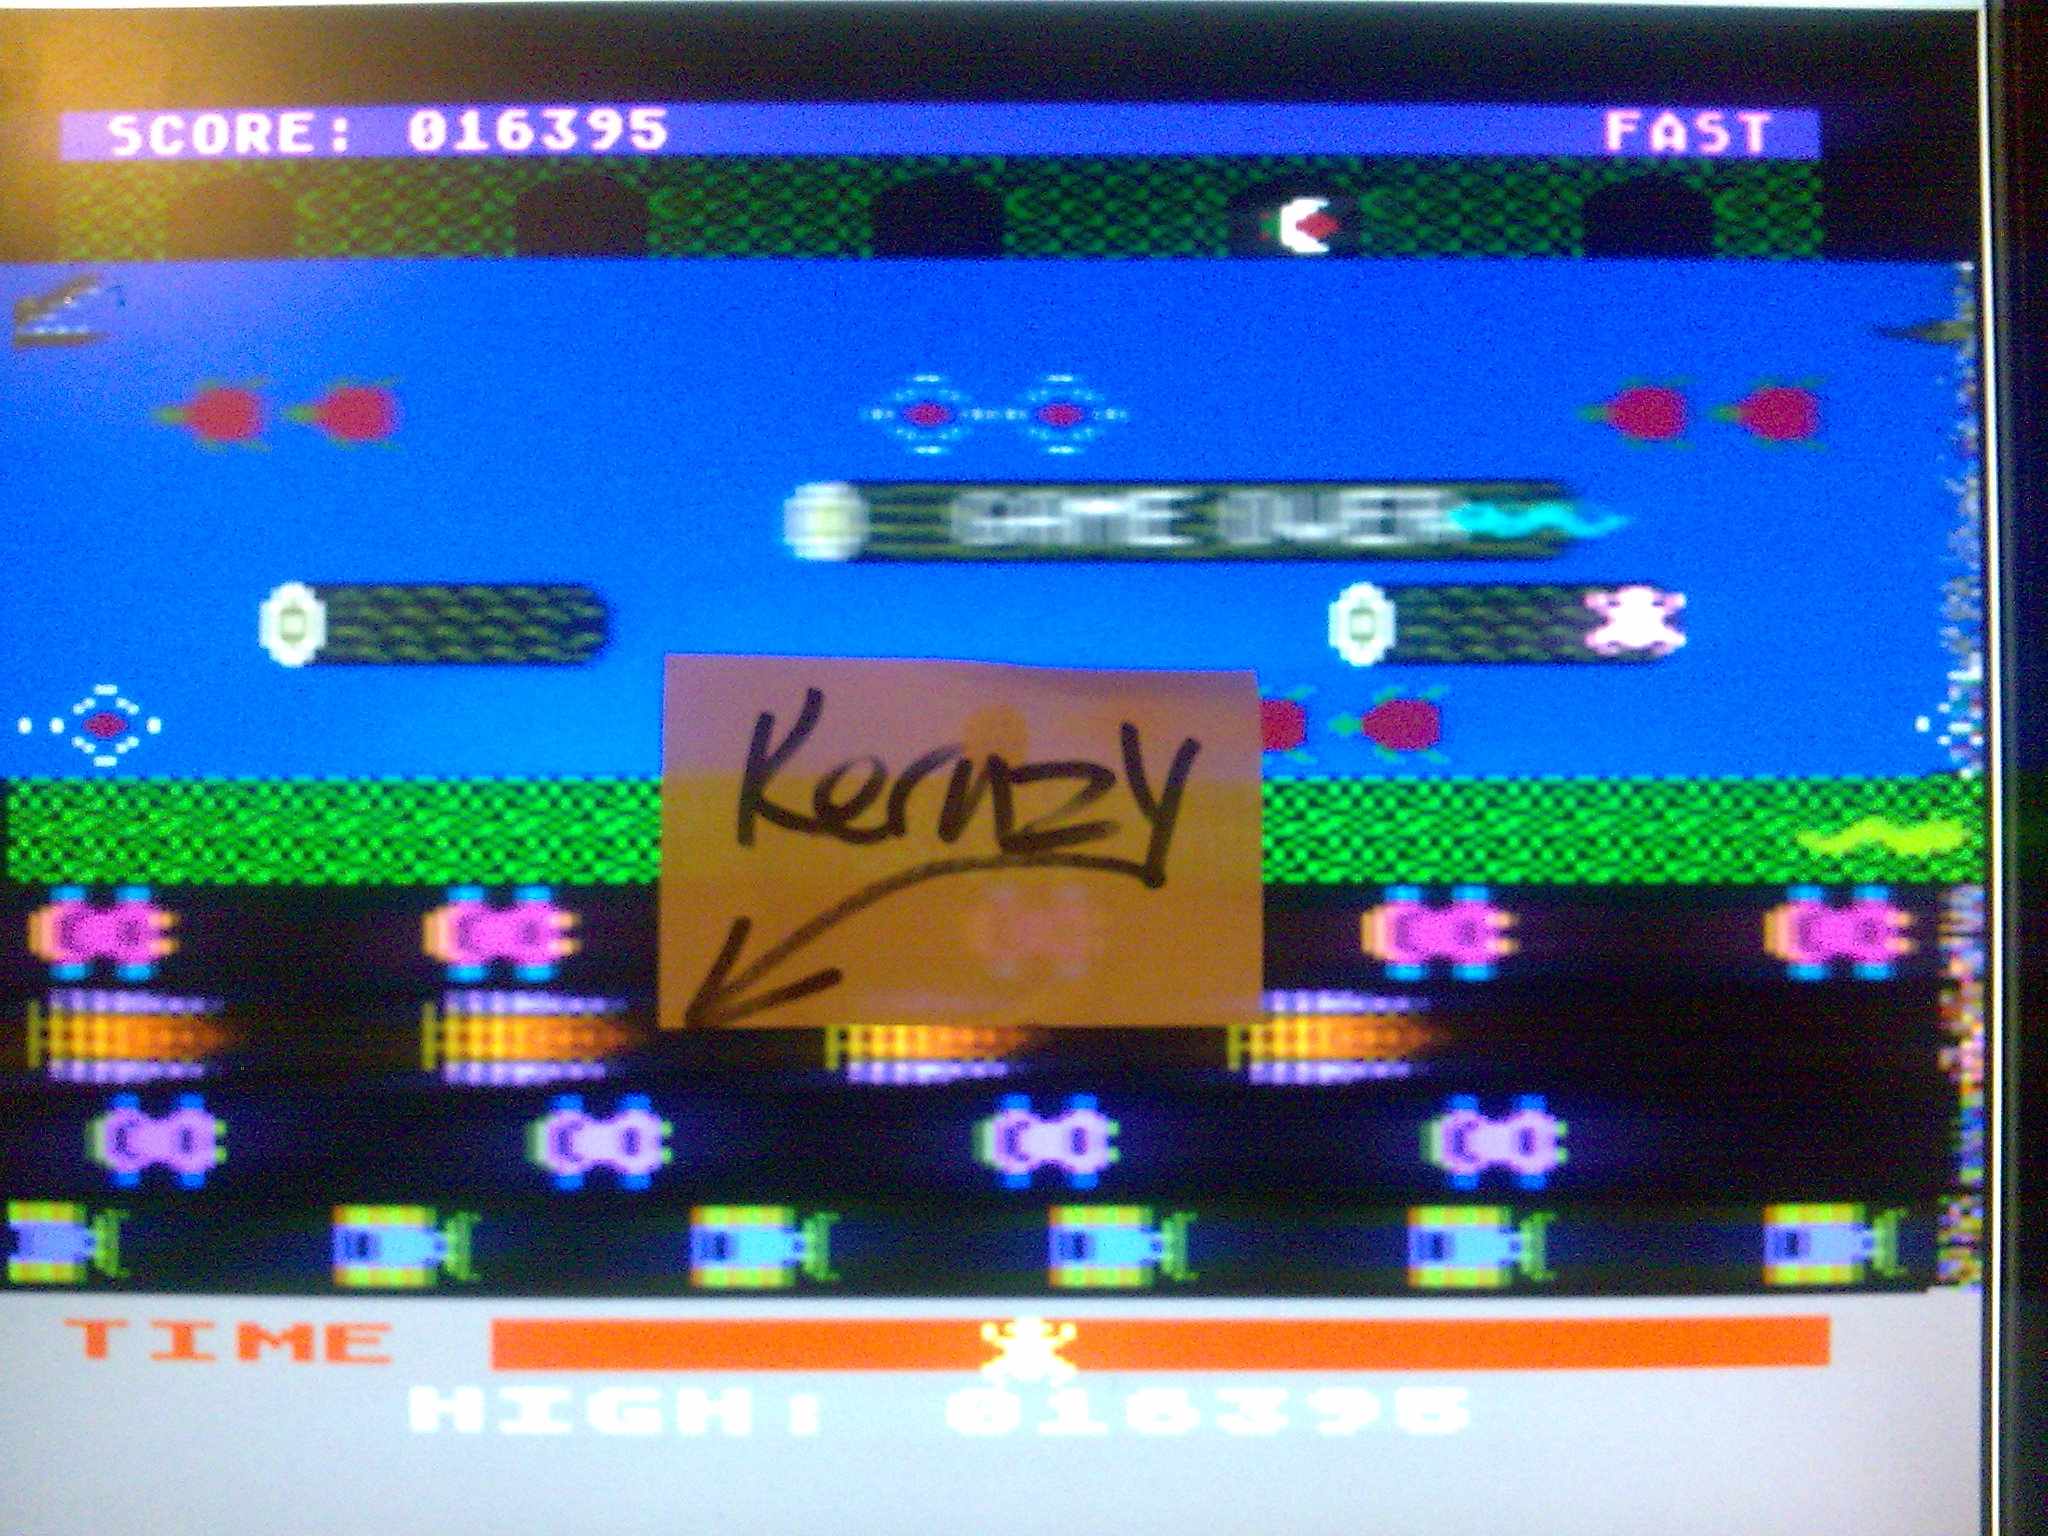 kernzy: Frogger: Fast [Sierra Online/Chuck Benton] (Atari 400/800/XL/XE Emulated) 16,395 points on 2014-10-17 21:02:43